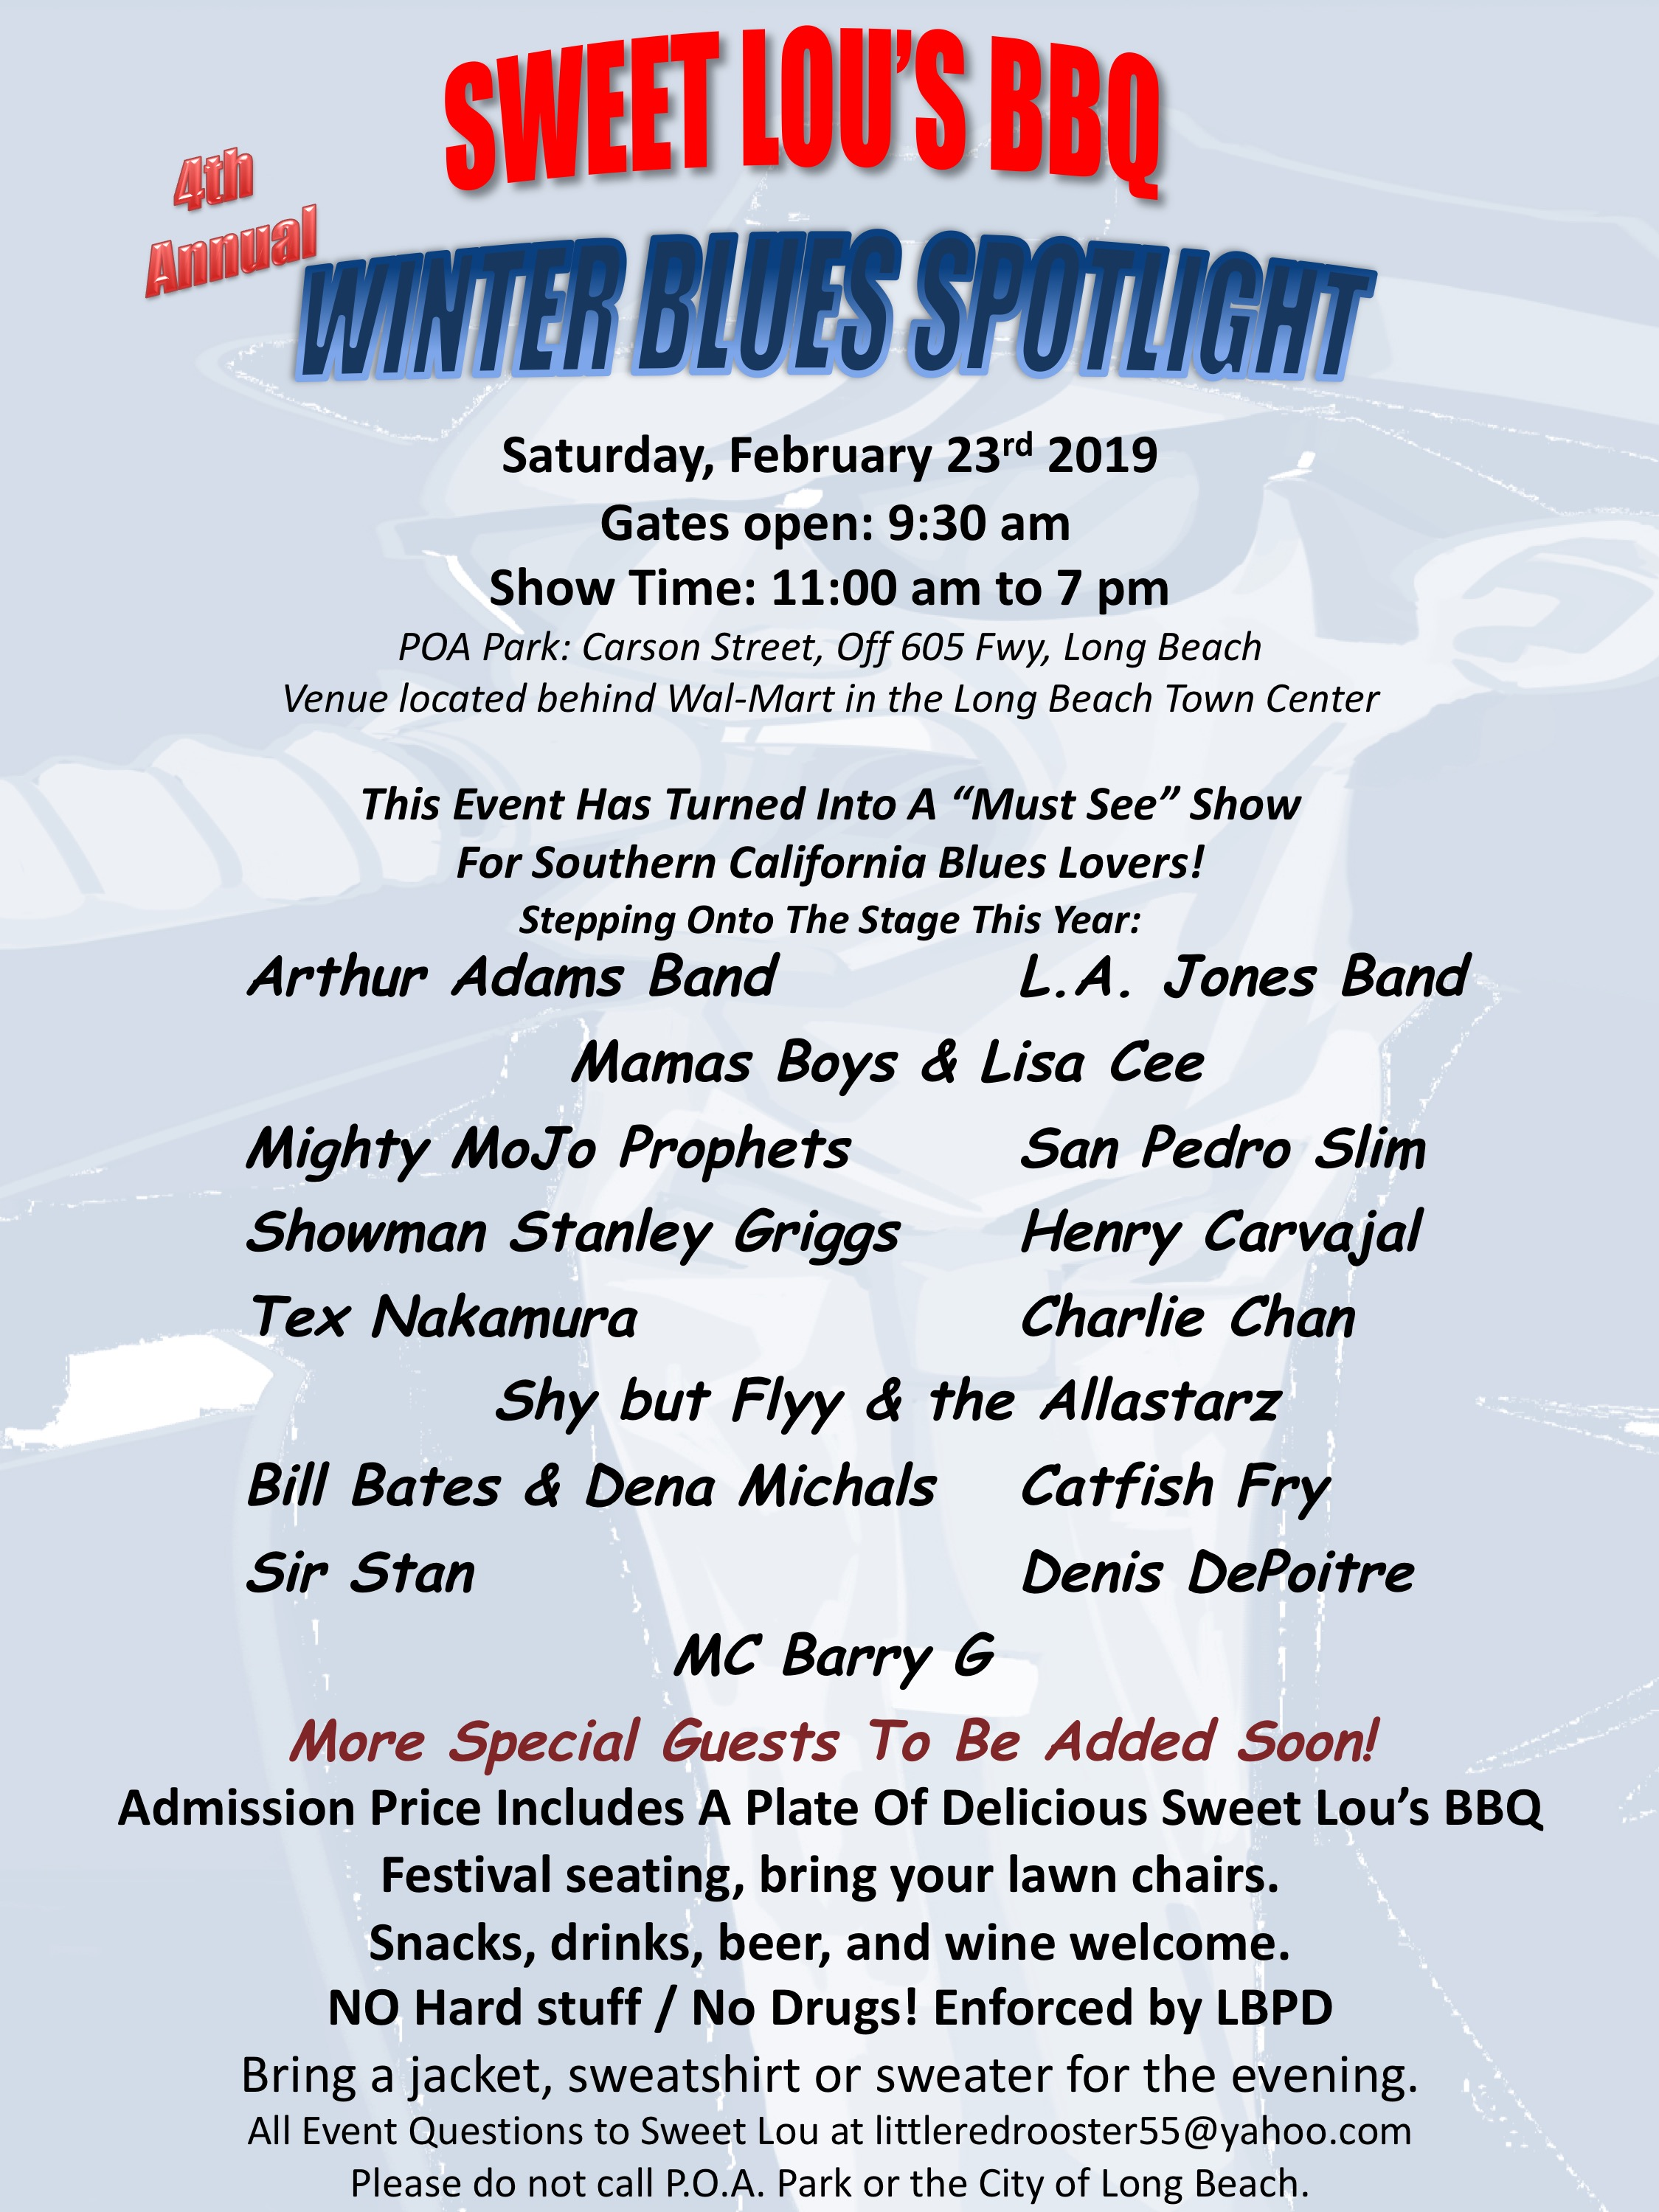 Sweet Lou's BBQ 4th Annual Winter Blues Spotlight Saturday, February 23rd 2019